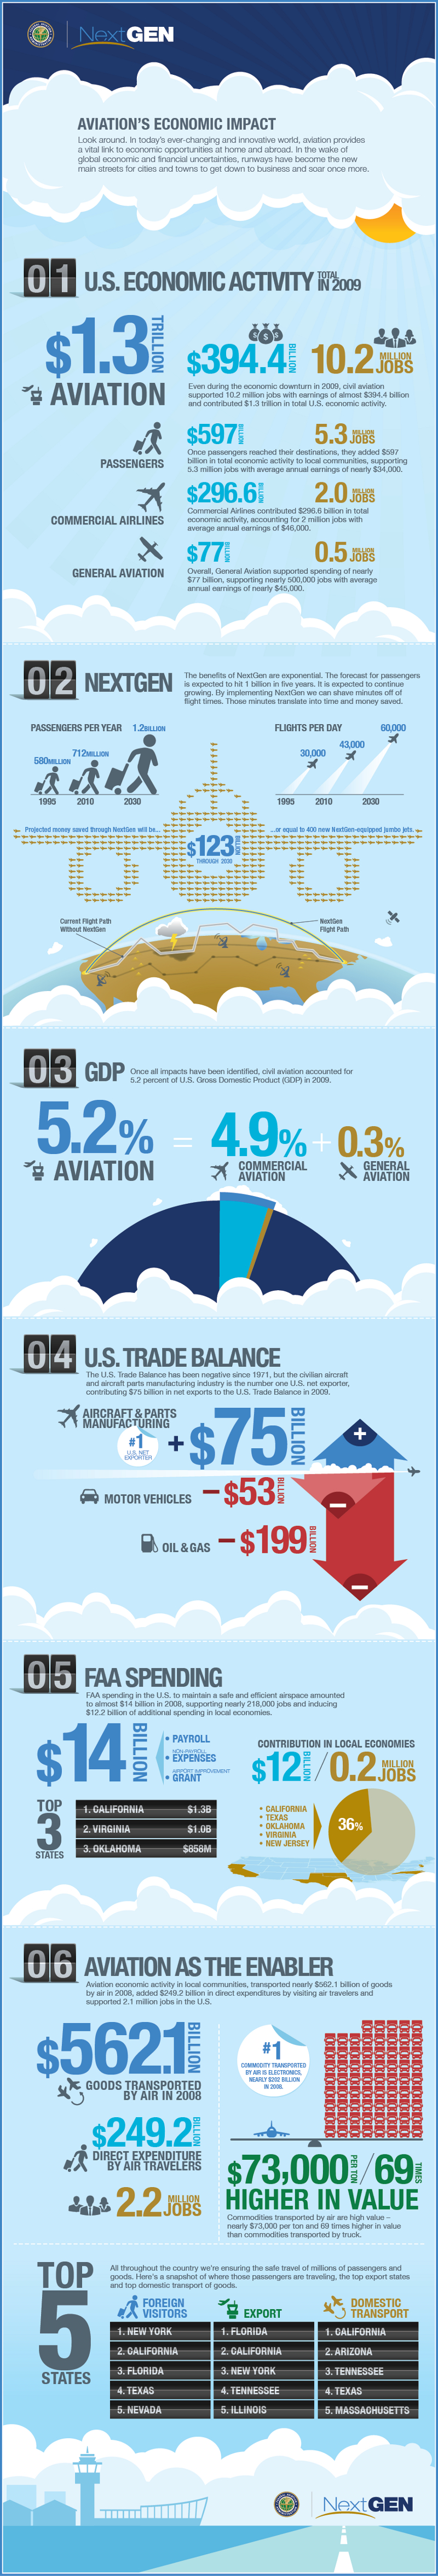 Economic Impact on Aviation Industry